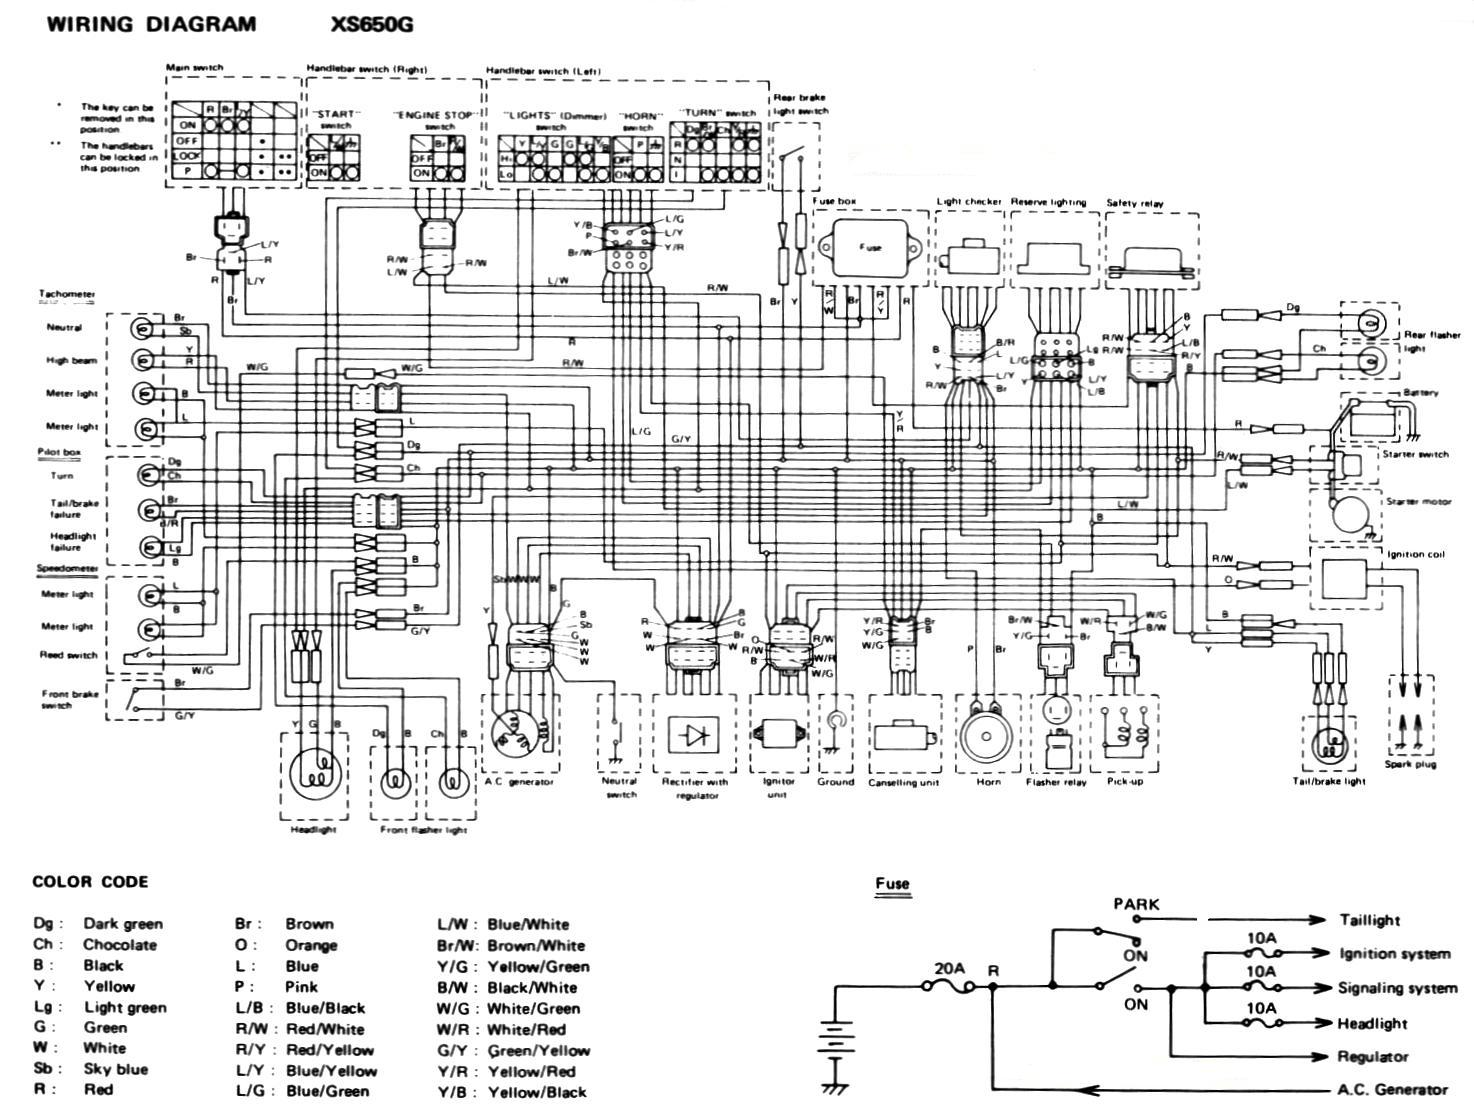 1987 Suzuki Enduro Wiring Schematic Diagram Electricity 1974 Yamaha 360 Images Gallery